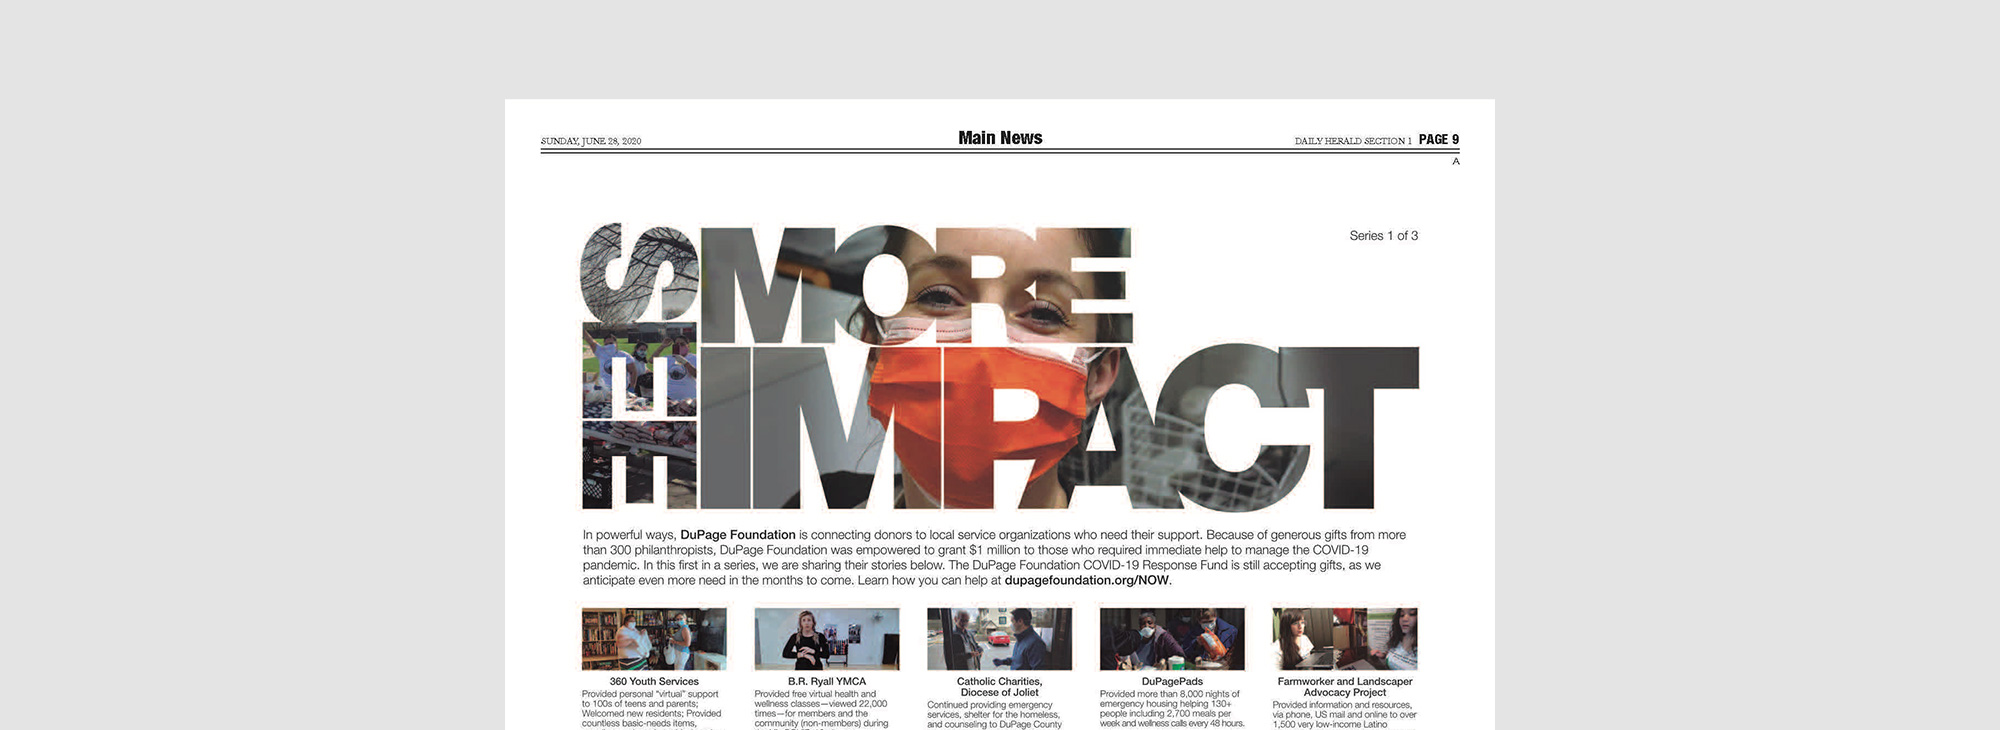 See more impact type treatment used on website.